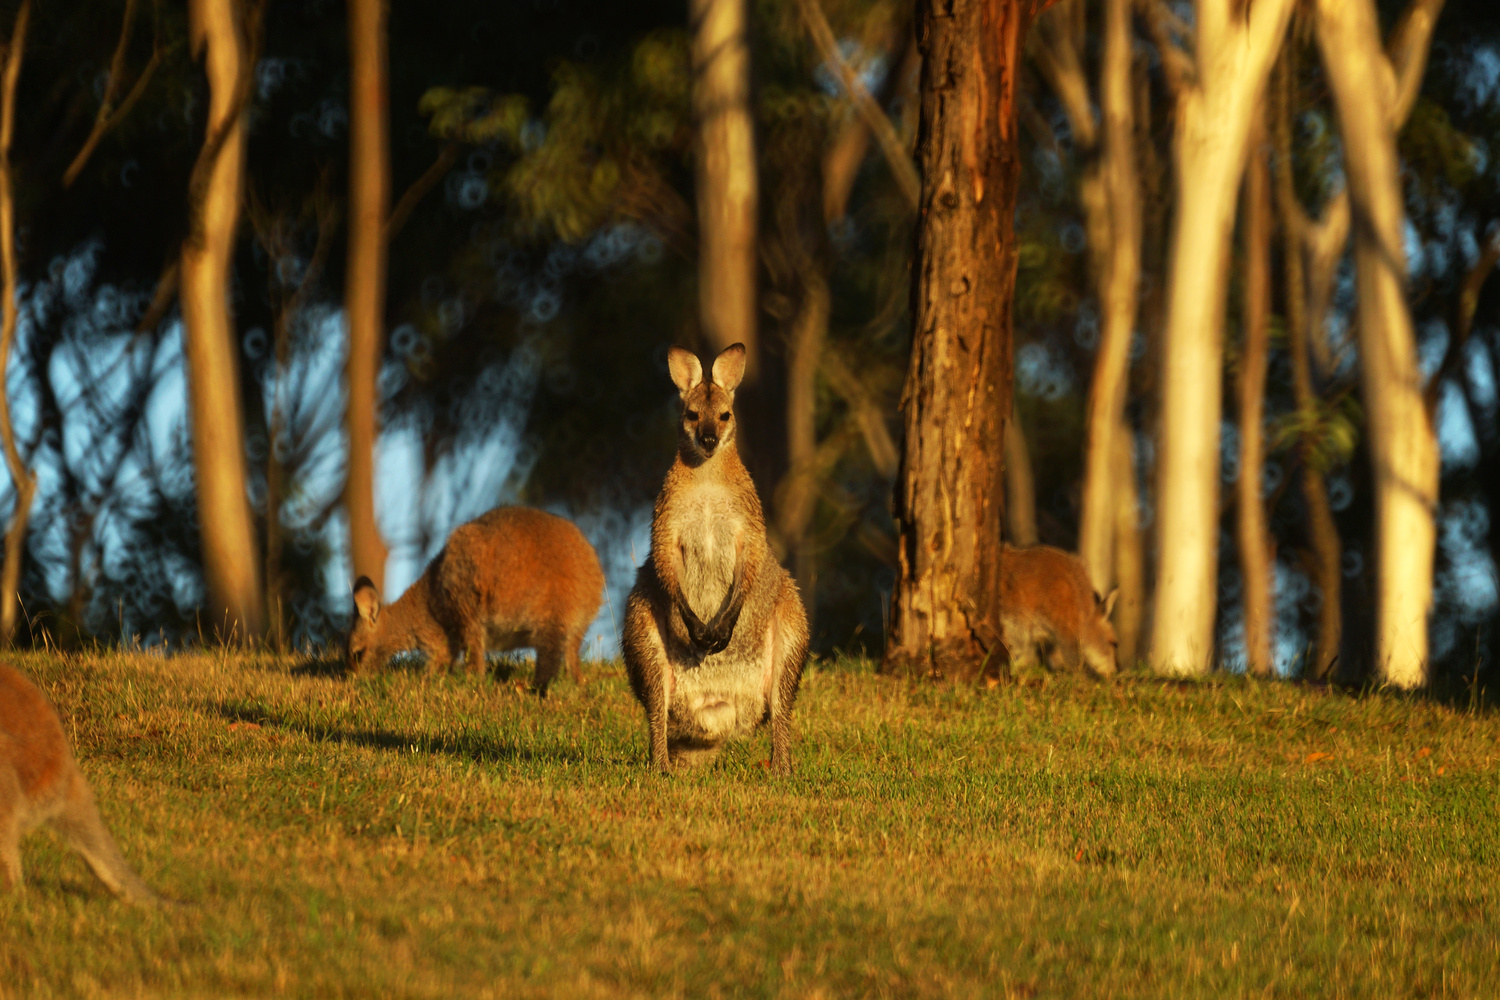 Kangaroo on the watch by Wojciech Grencer